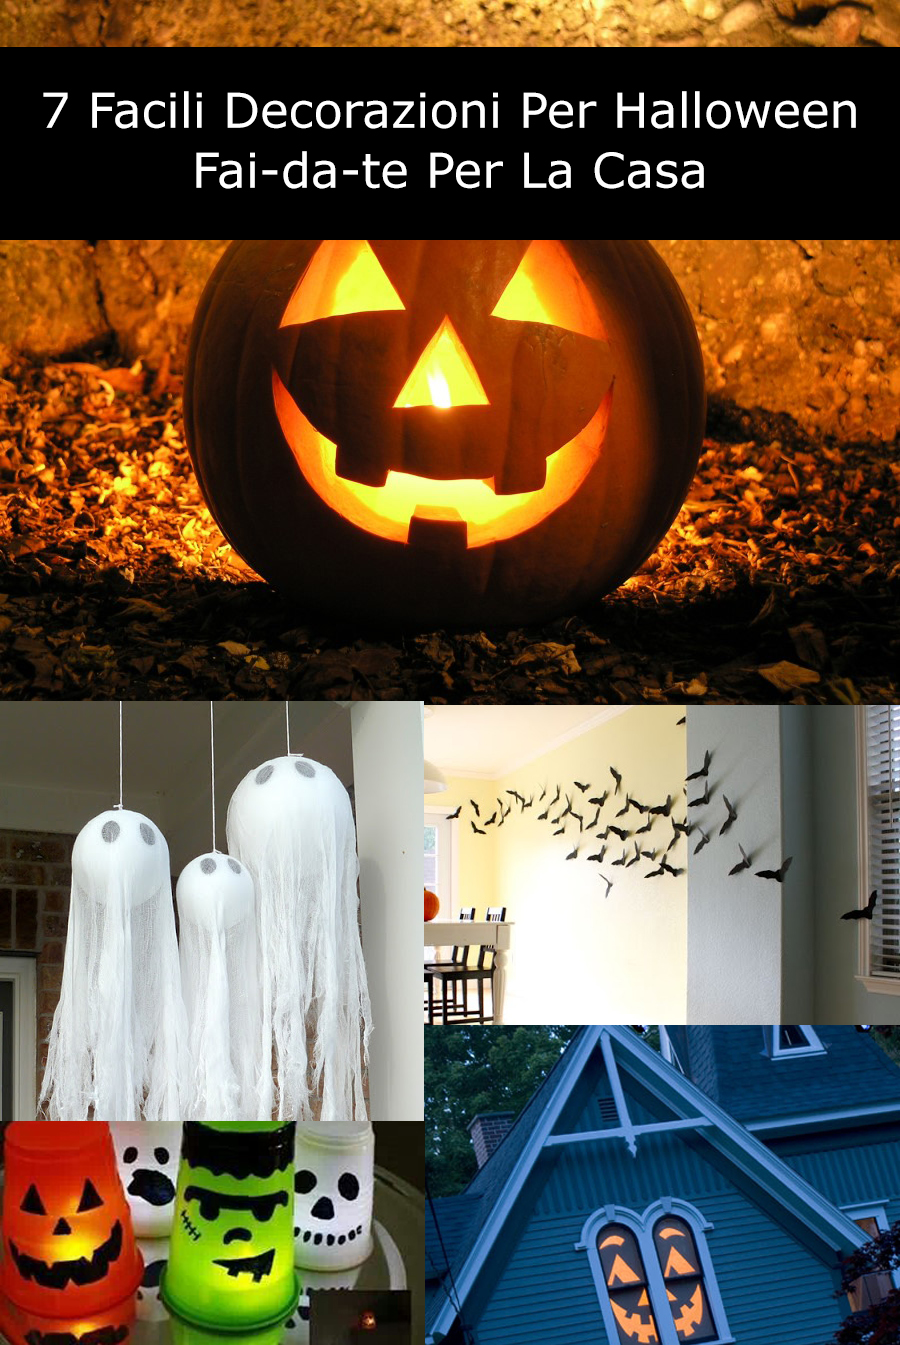 Home staging italia - Decorazioni halloween fatte in casa ...